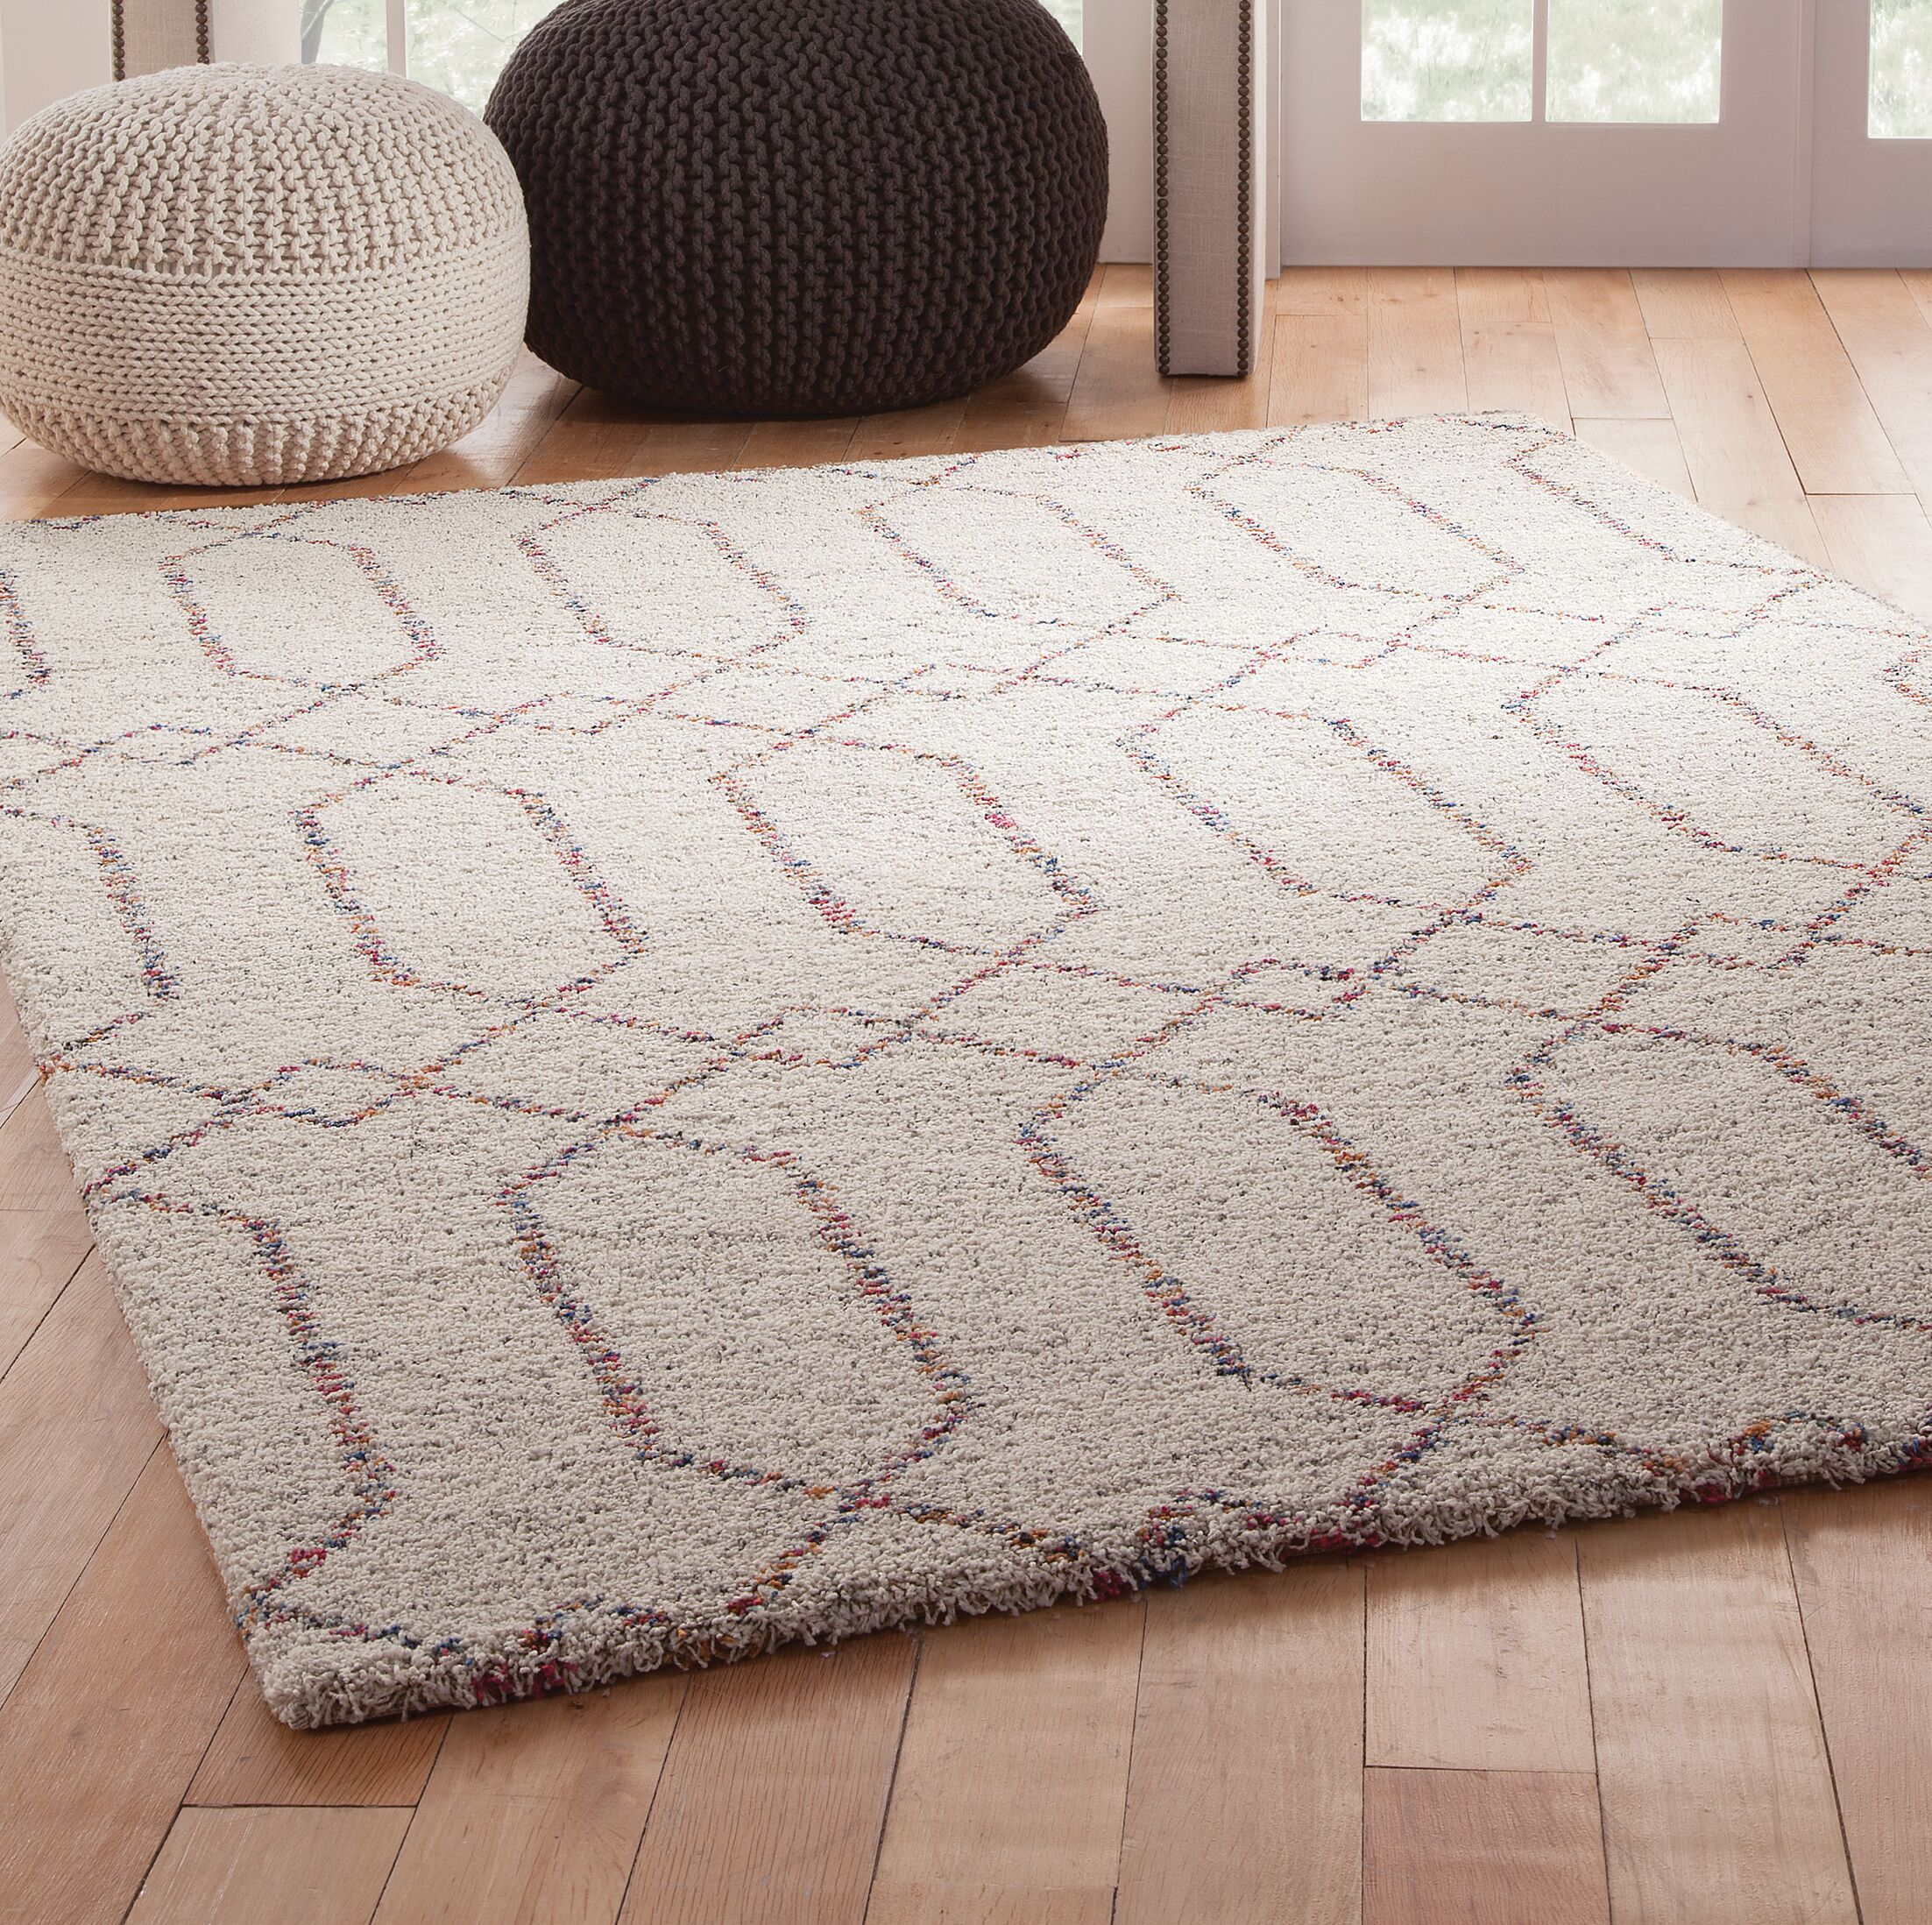 Teasley Shag/Flokati Synthetic Ivory/Red Indoor Area Rug Rug Size: Rectangle 8' x 10'